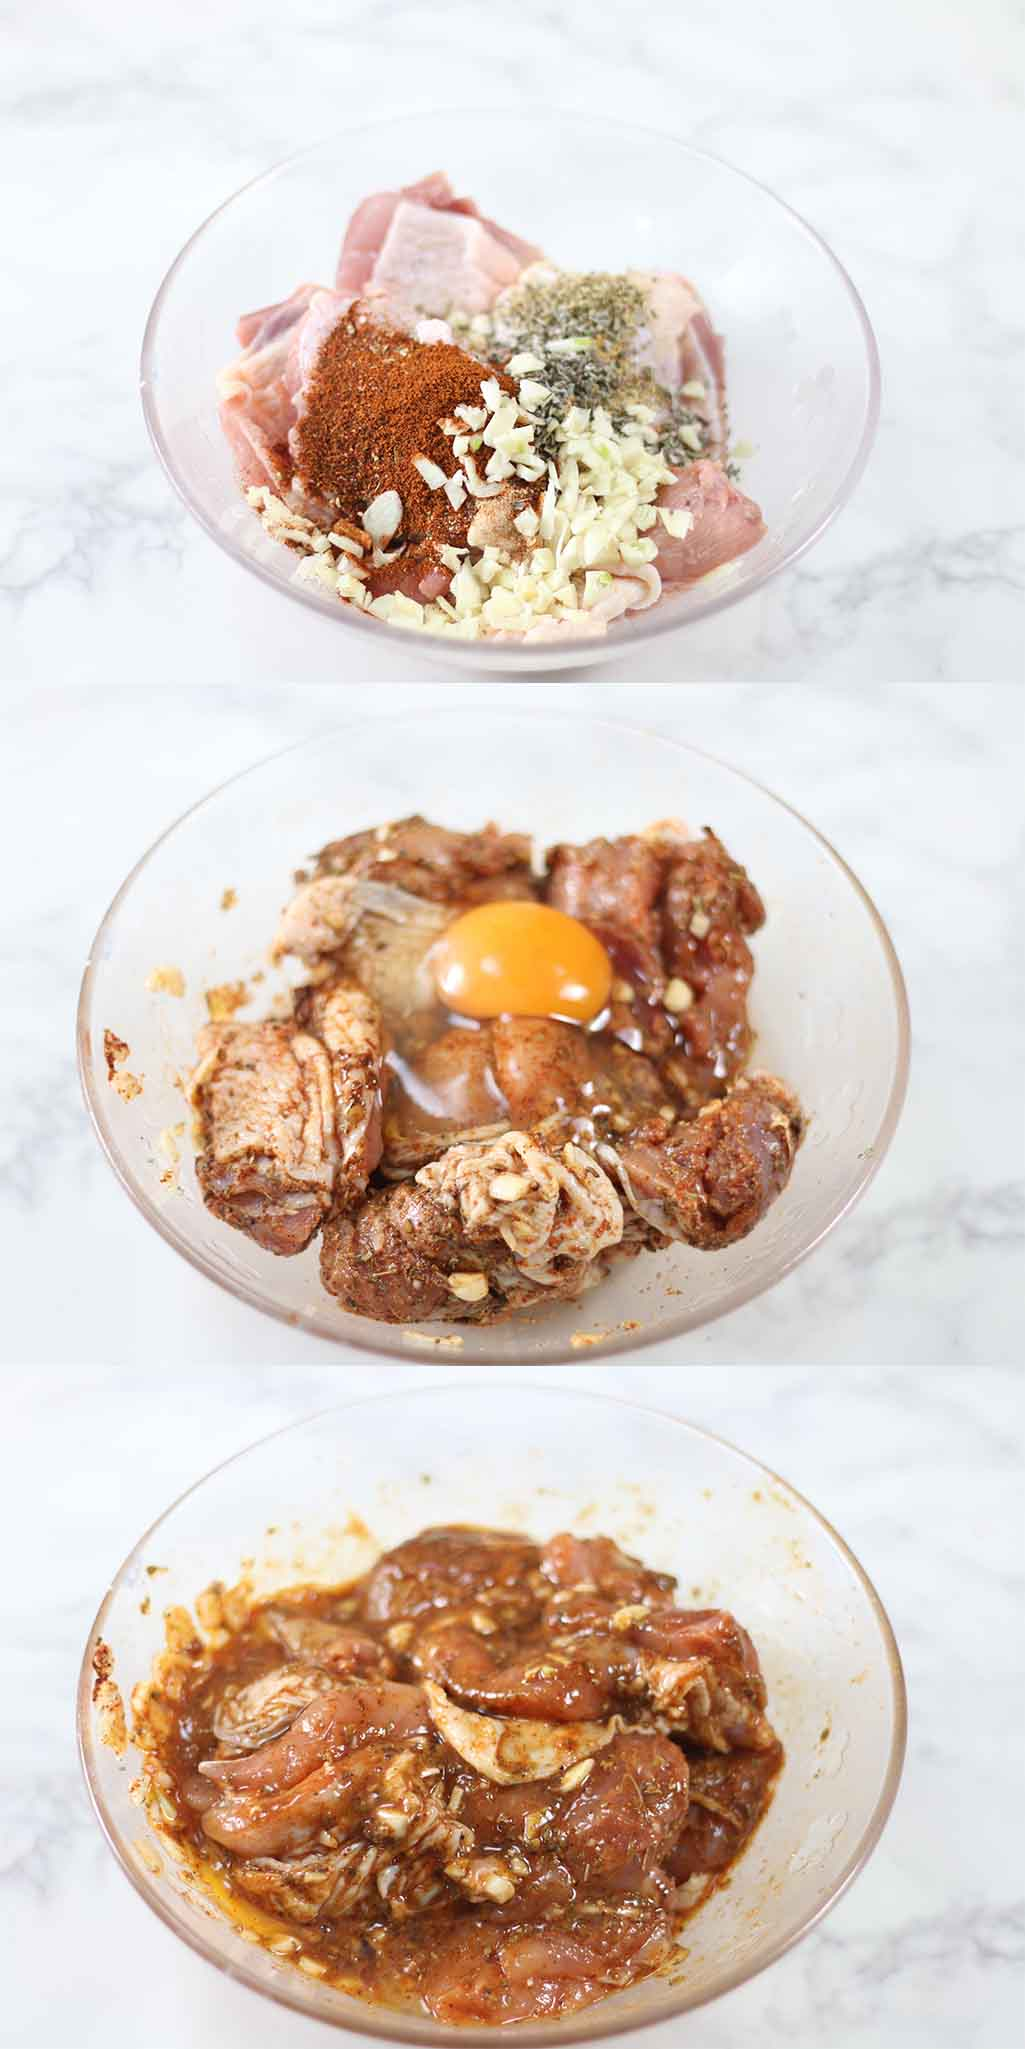 Low carb fried chicken marinating in spices.